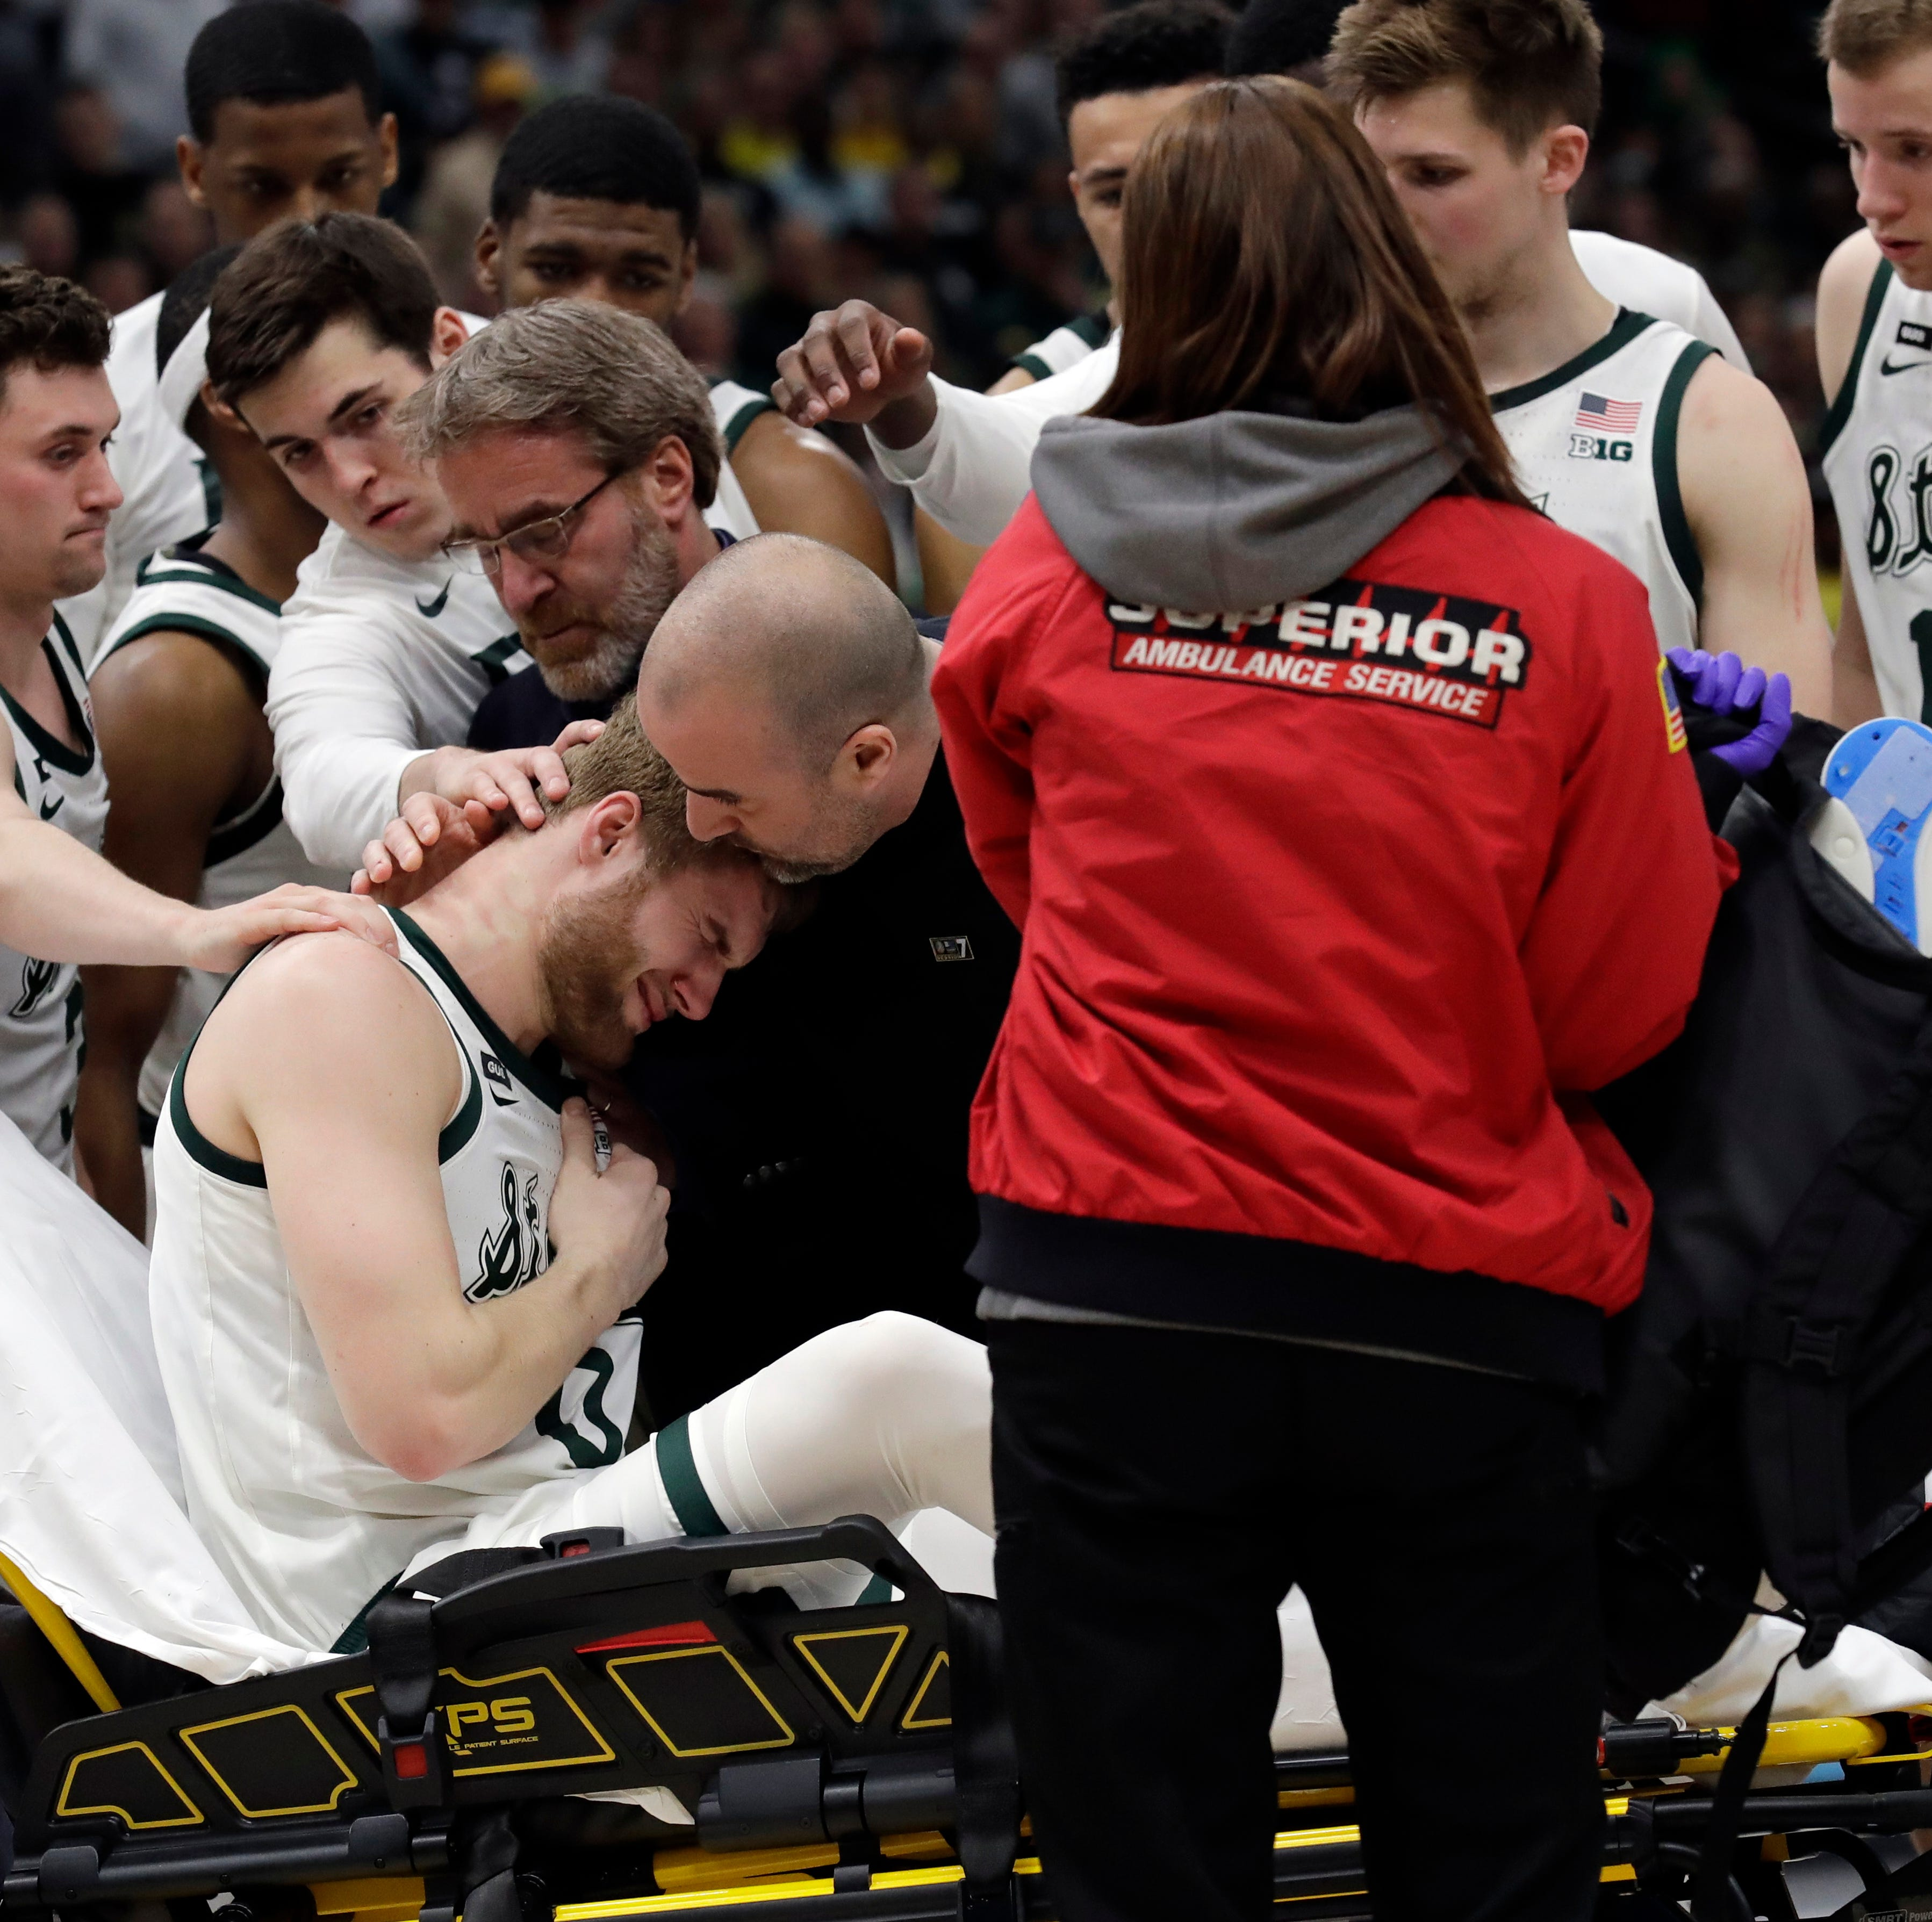 In moments of chaos, Michigan State basketball trainer provides calm voice, sound judgment